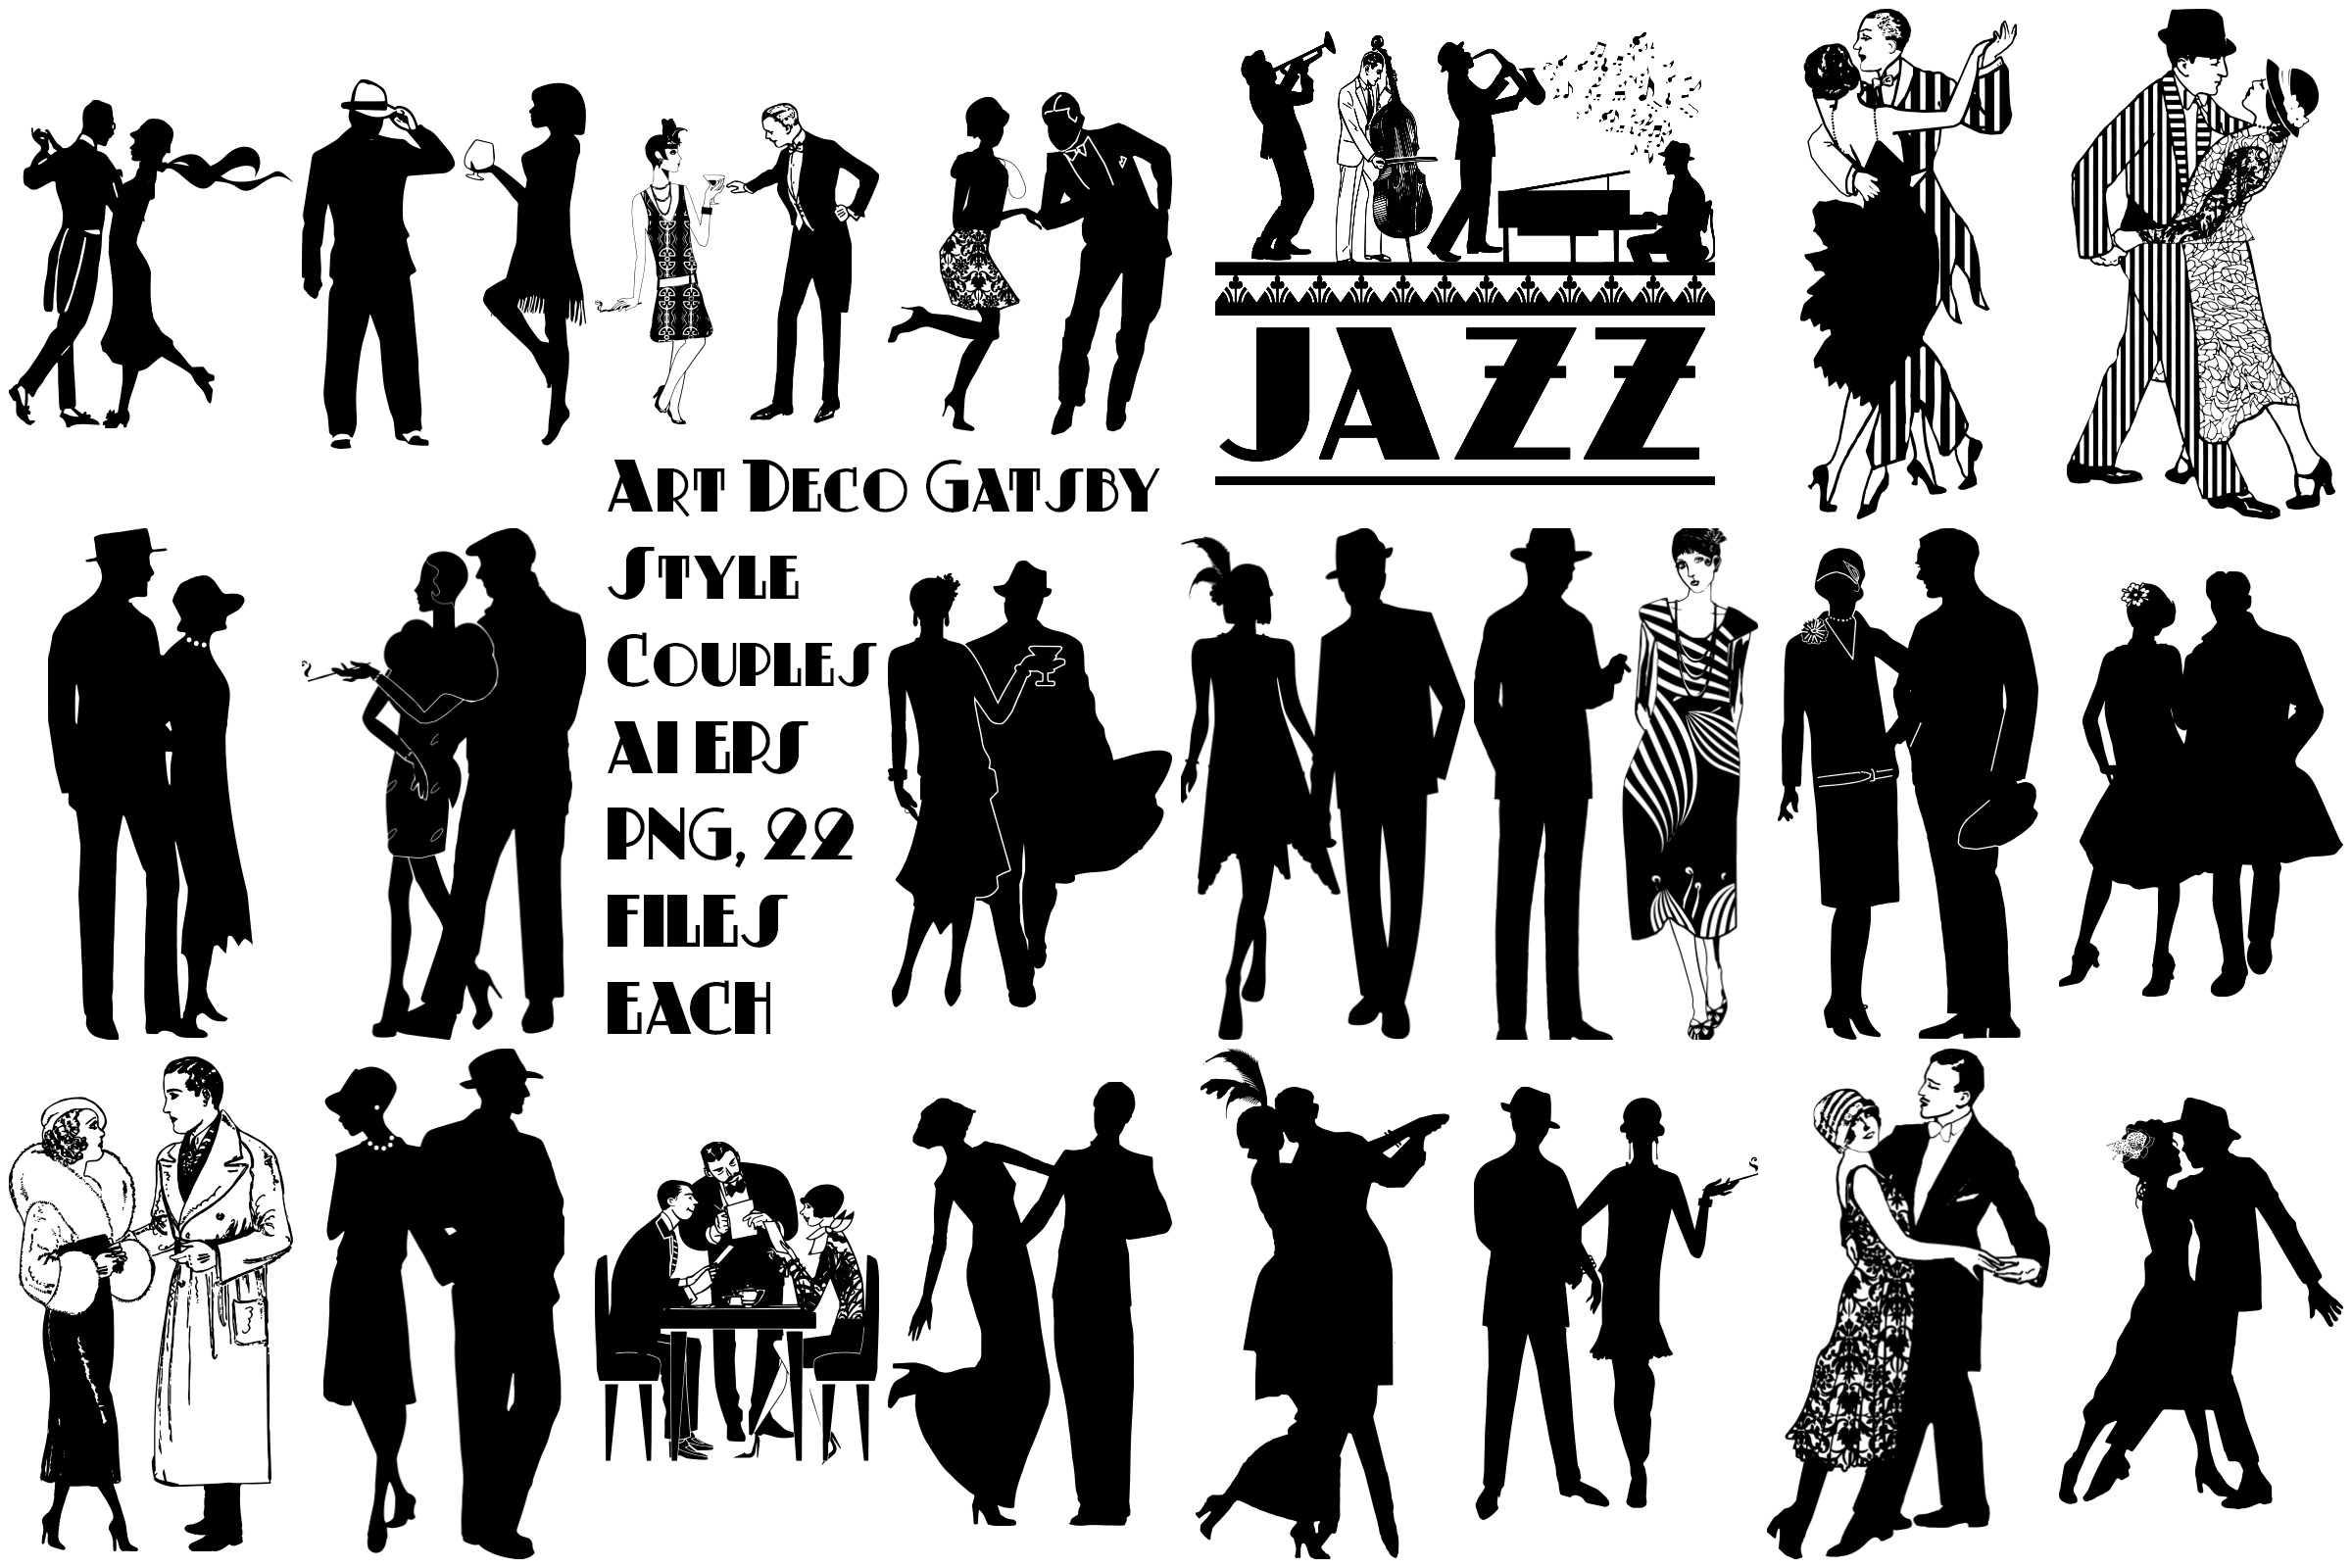 Art Deco Gatsby Jazz Style Couples AI EPS Vector & PNG example image 1